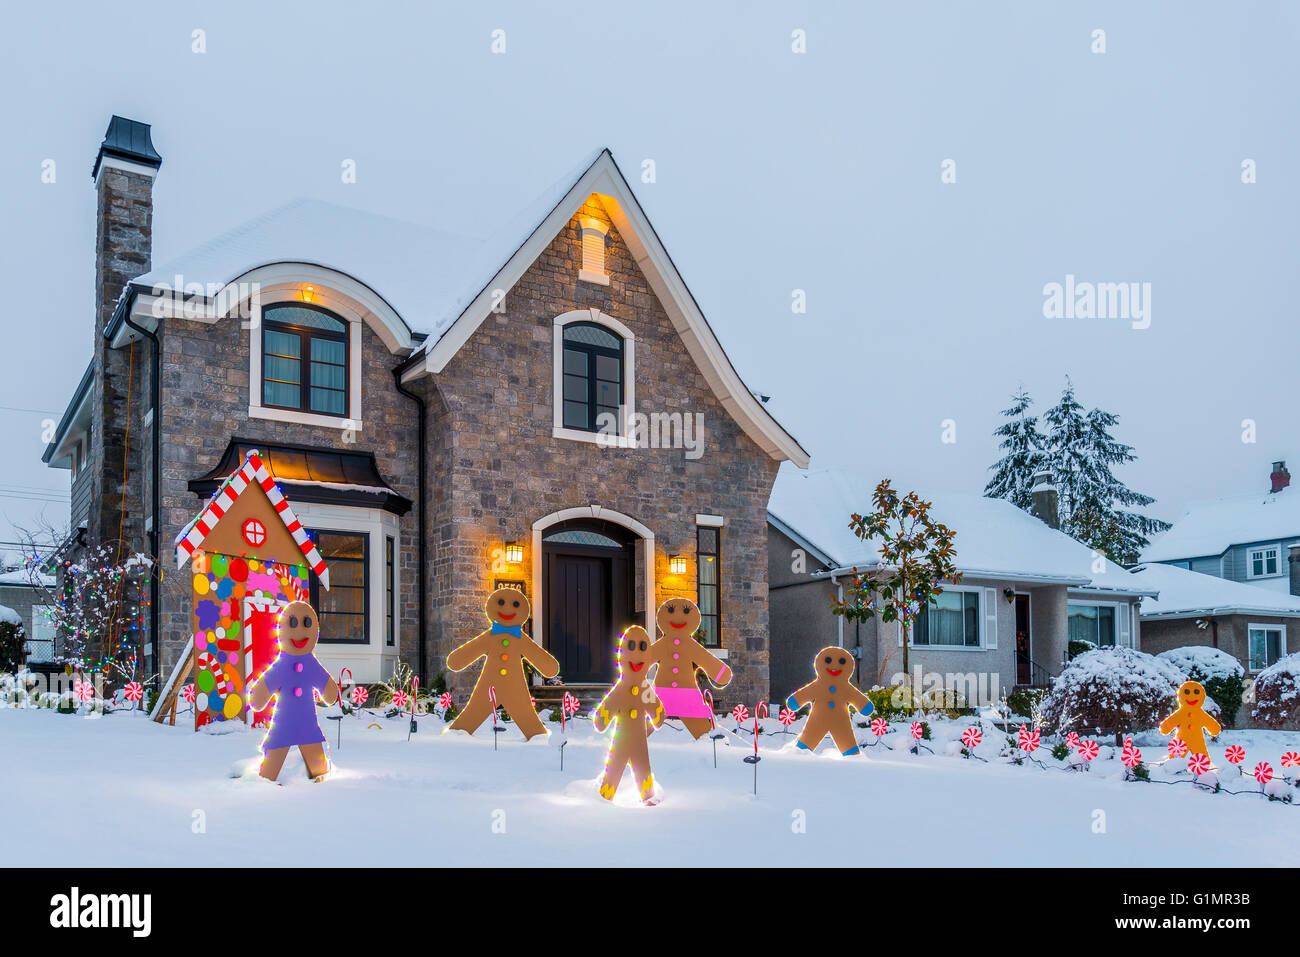 gingerbread house and men trinity st christmas lights competition vancouver british columbia canada